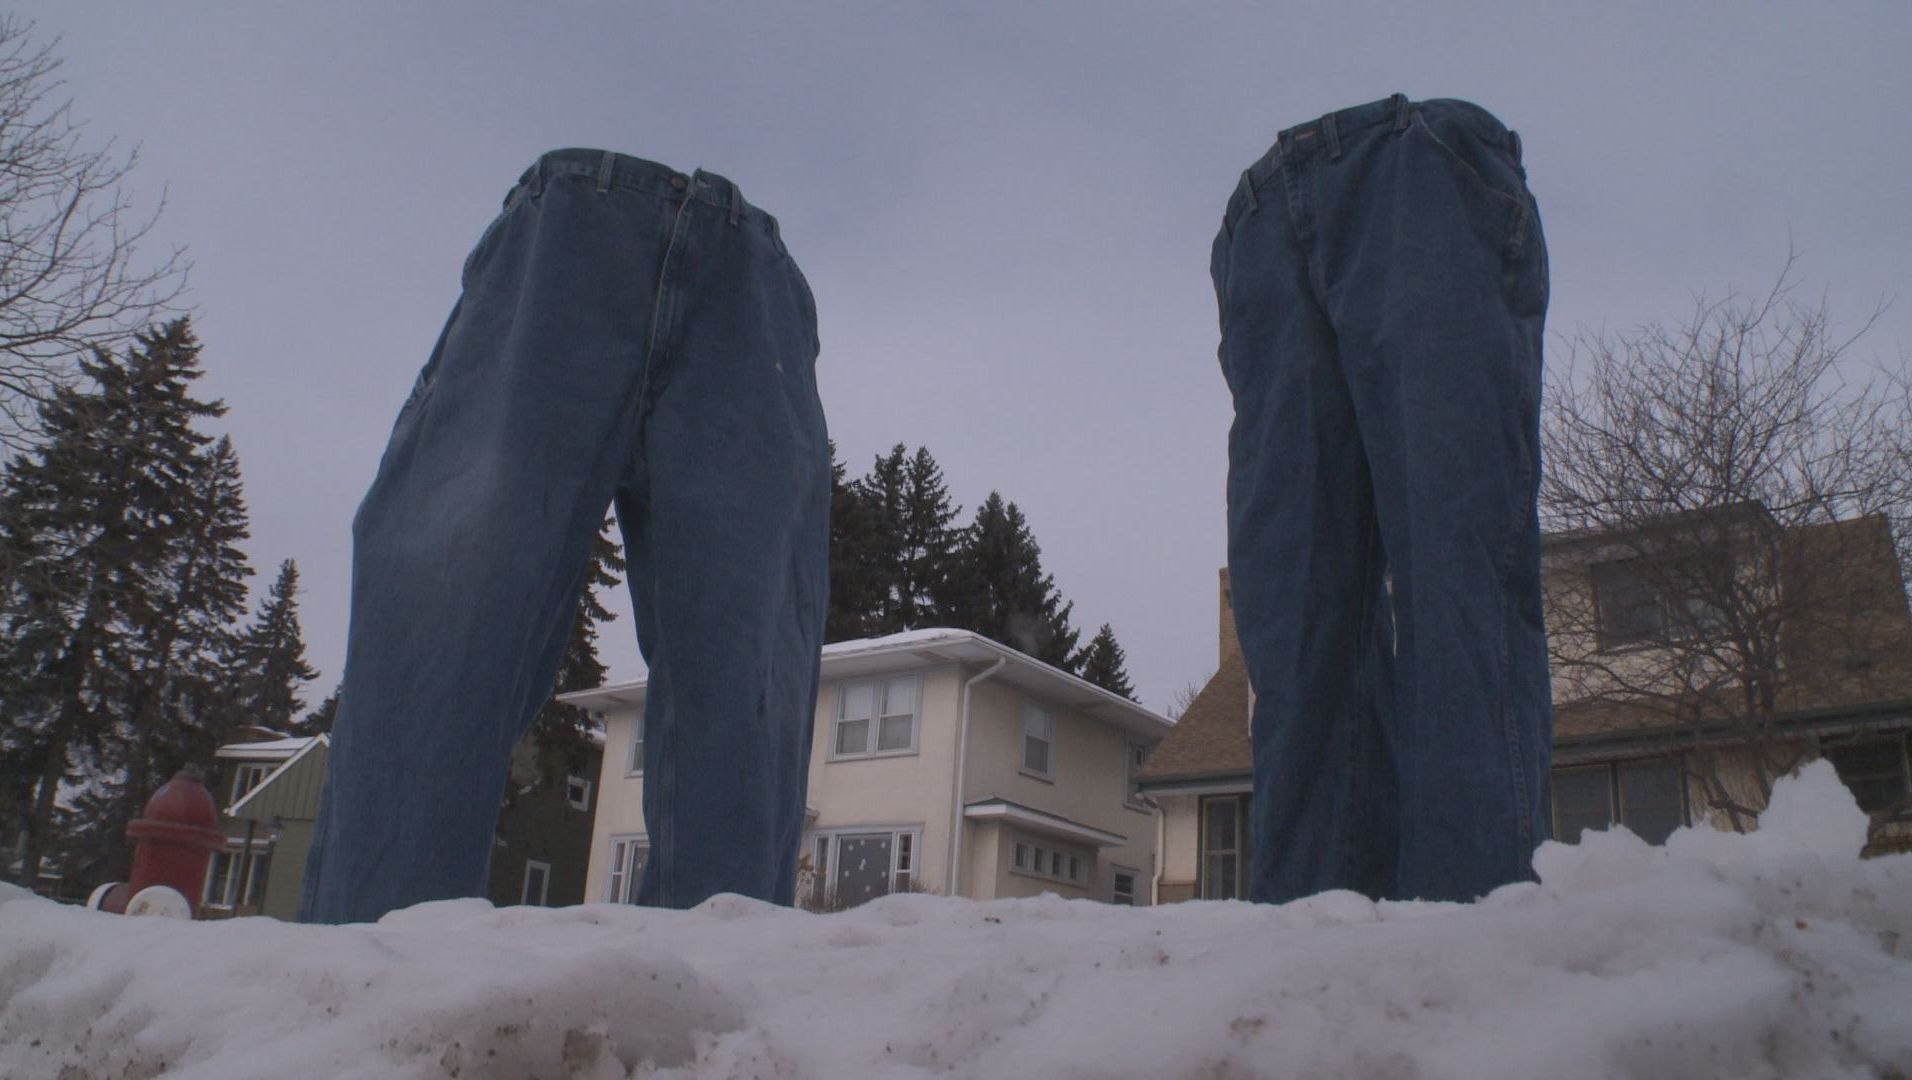 Tom Grotting froze two pairs of jeans and placed them near the road on Columbia Parkway.